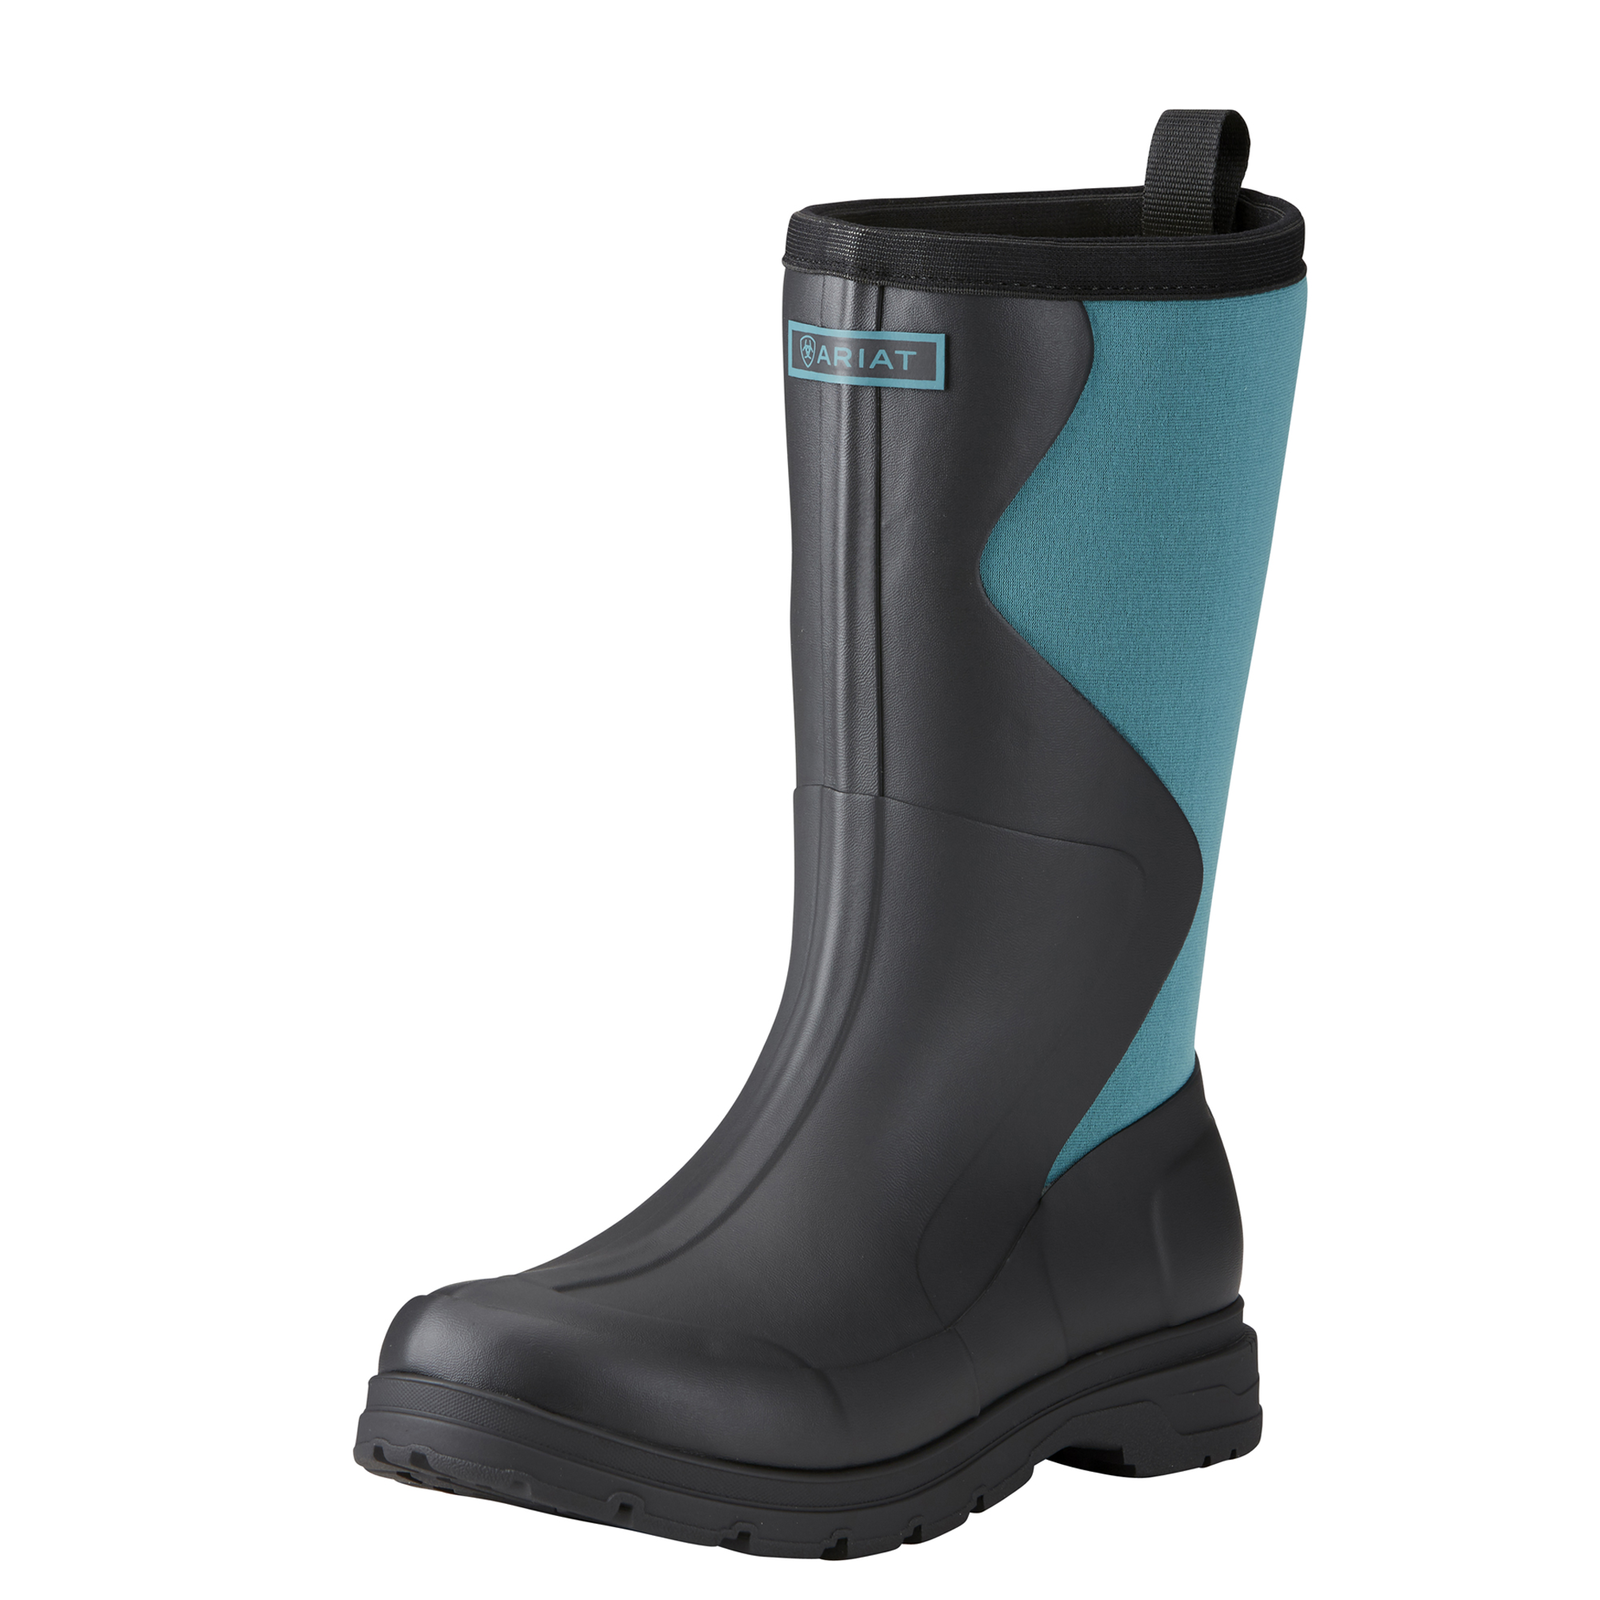 Ariat Springfield Womens Rubber Boot - Black Dusty